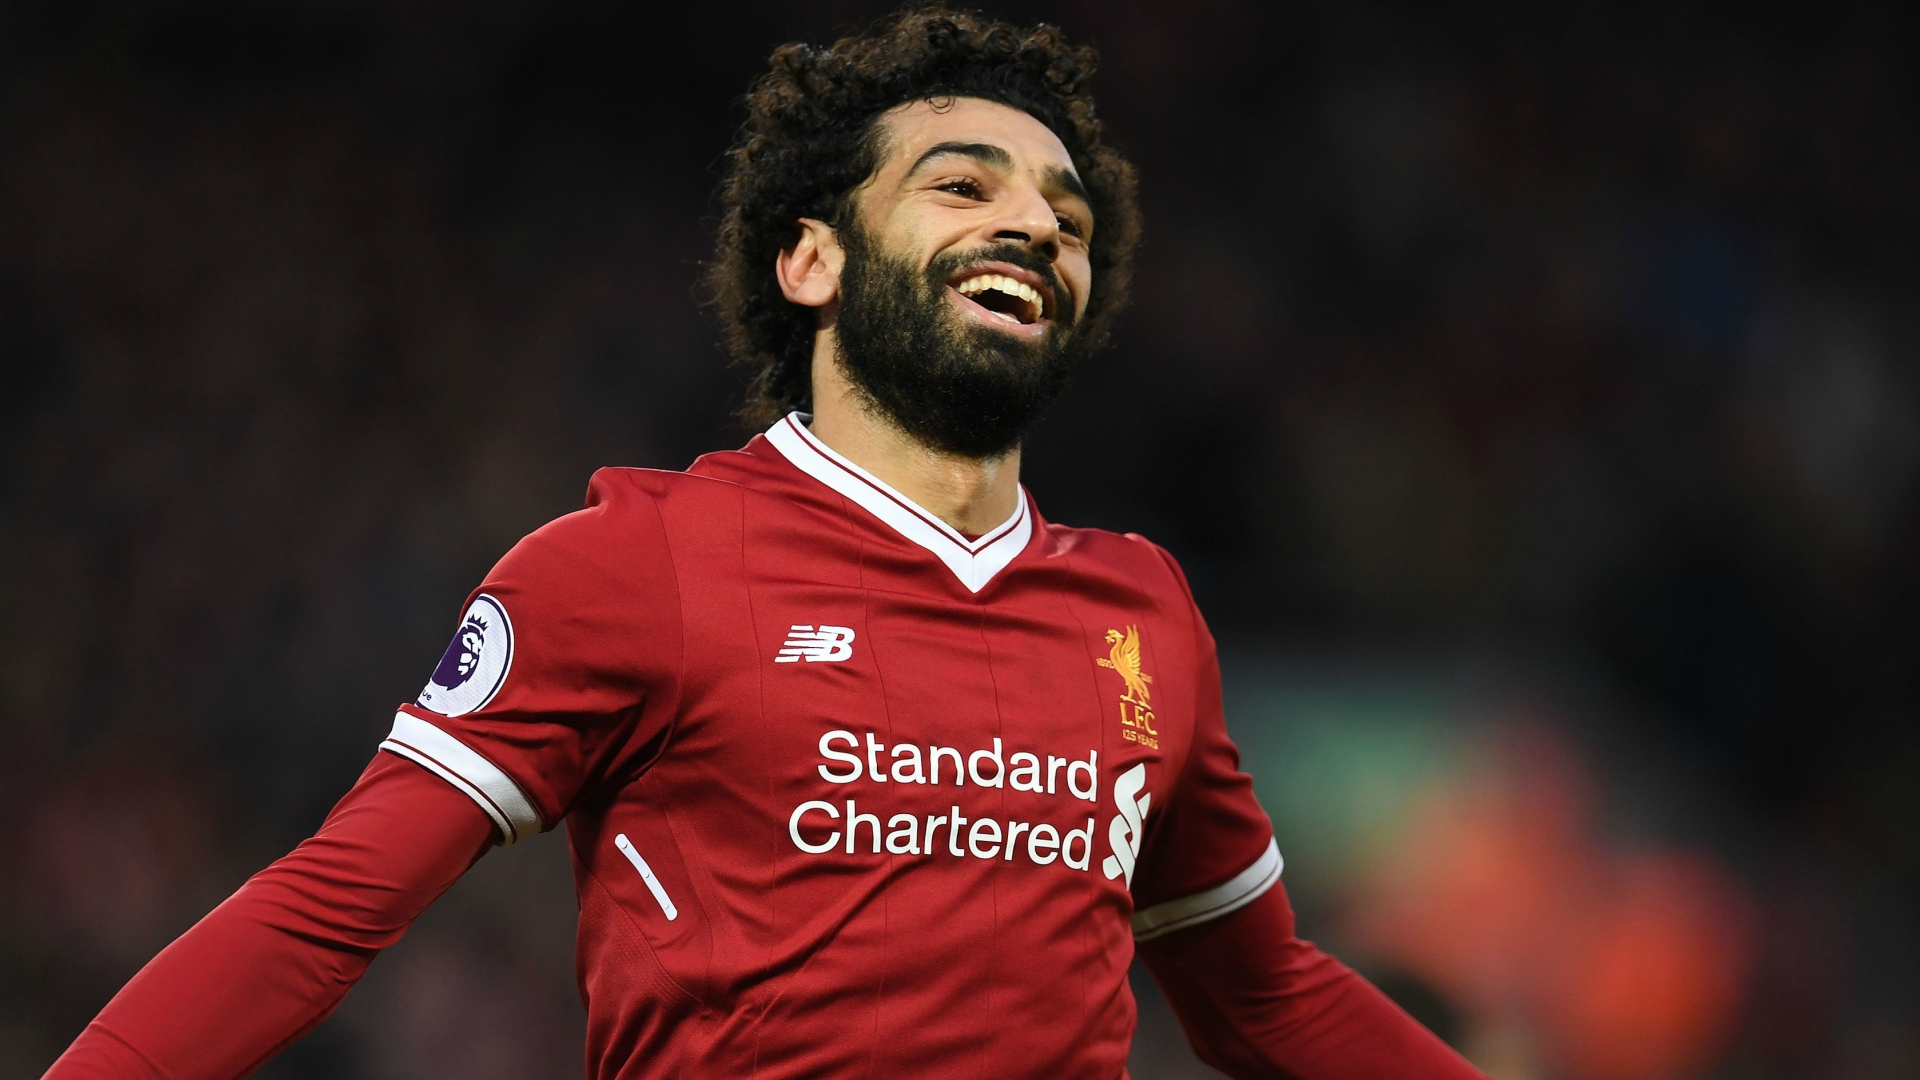 Download 1920x1080 Wallpaper Mohamed Salah, Red Jersey